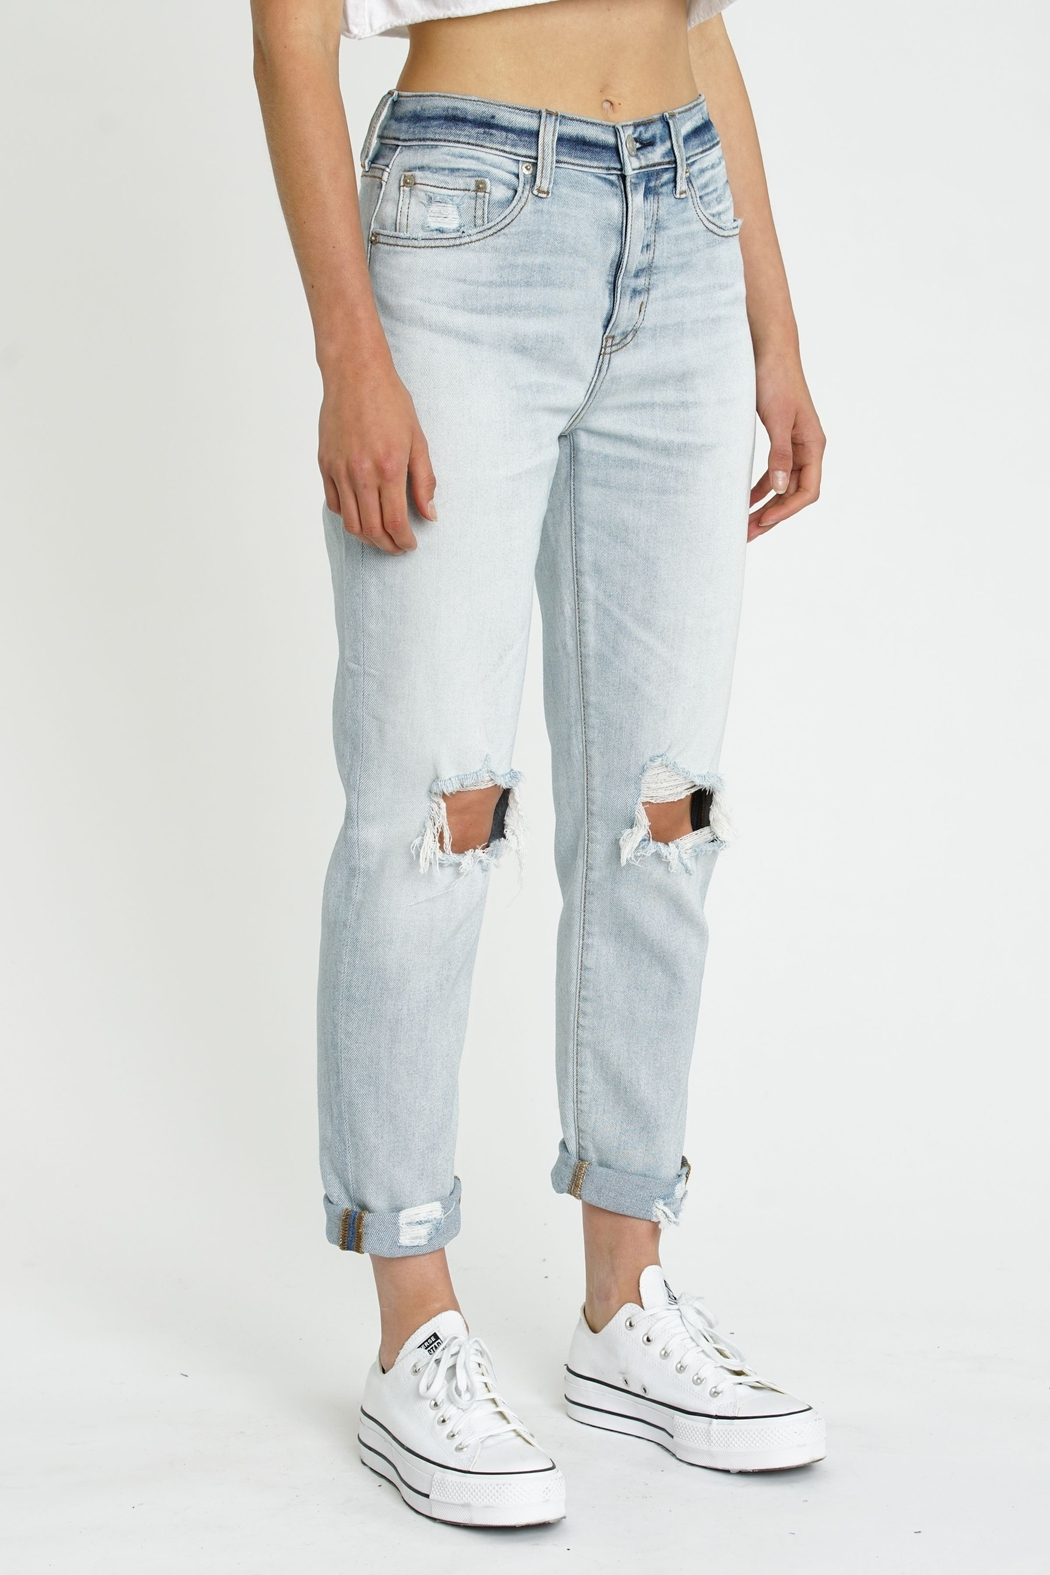 Daze Loverboy High Rise Jeans - FAR OUT - Front Full Image